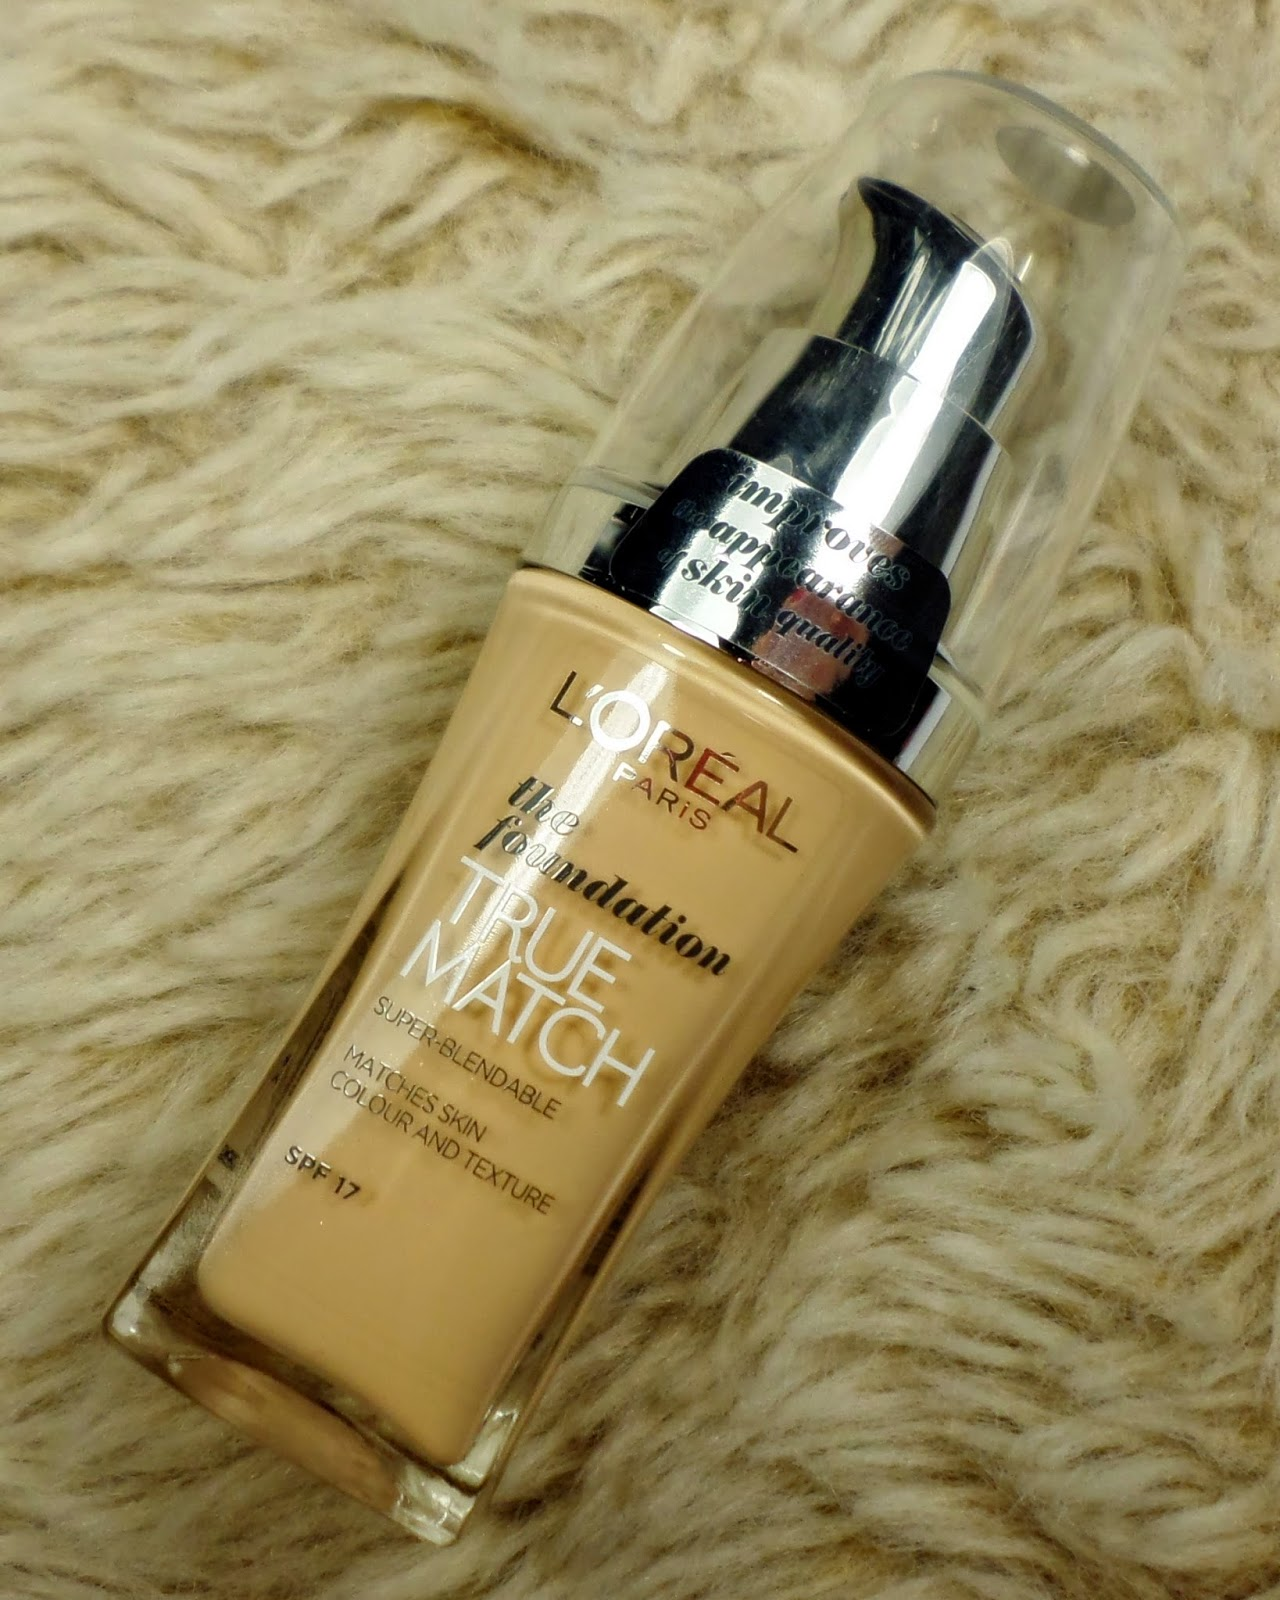 L'Oreal True Match Foundation in N1 Ivory